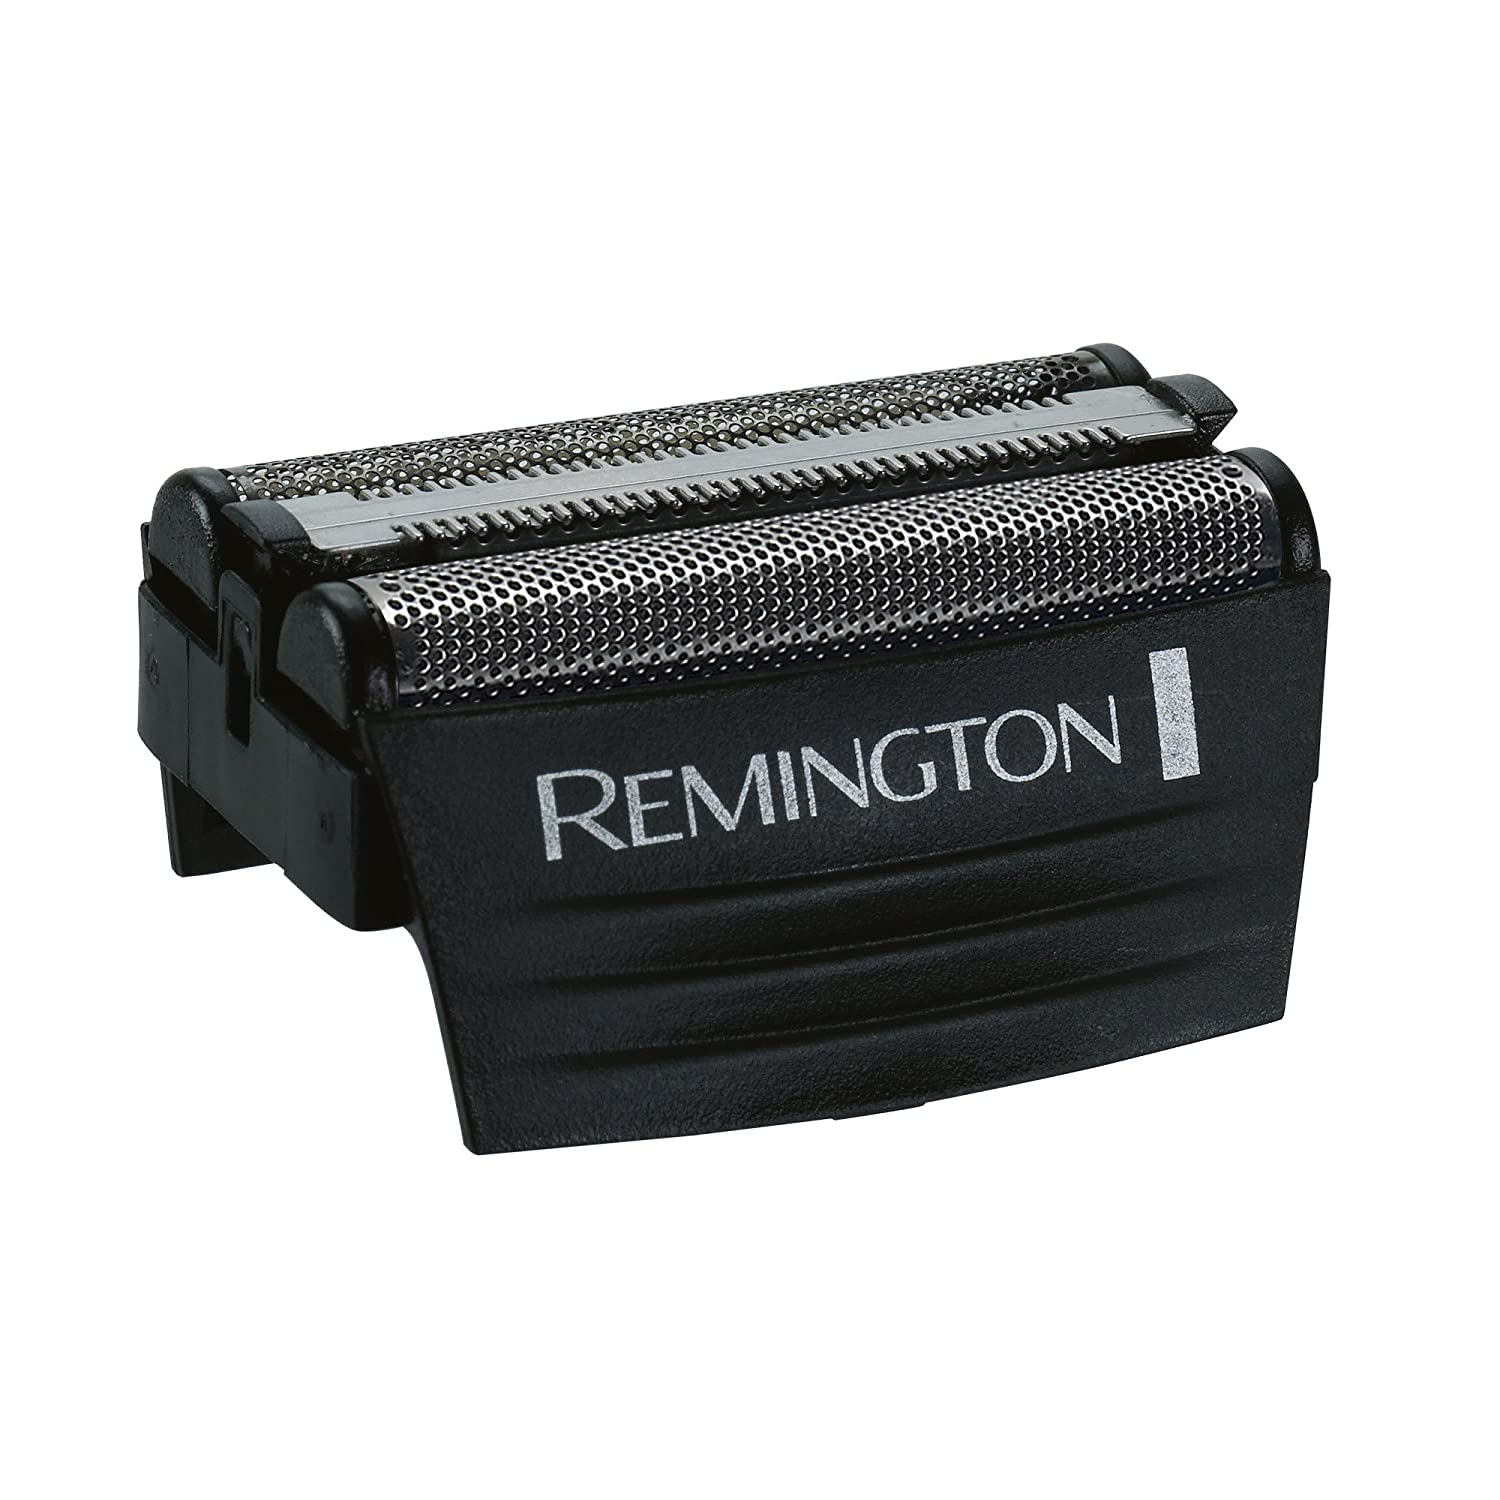 Remington SPF-300 Screens and Cutters for Shavers F4900, F5800 and F7800 REMA2